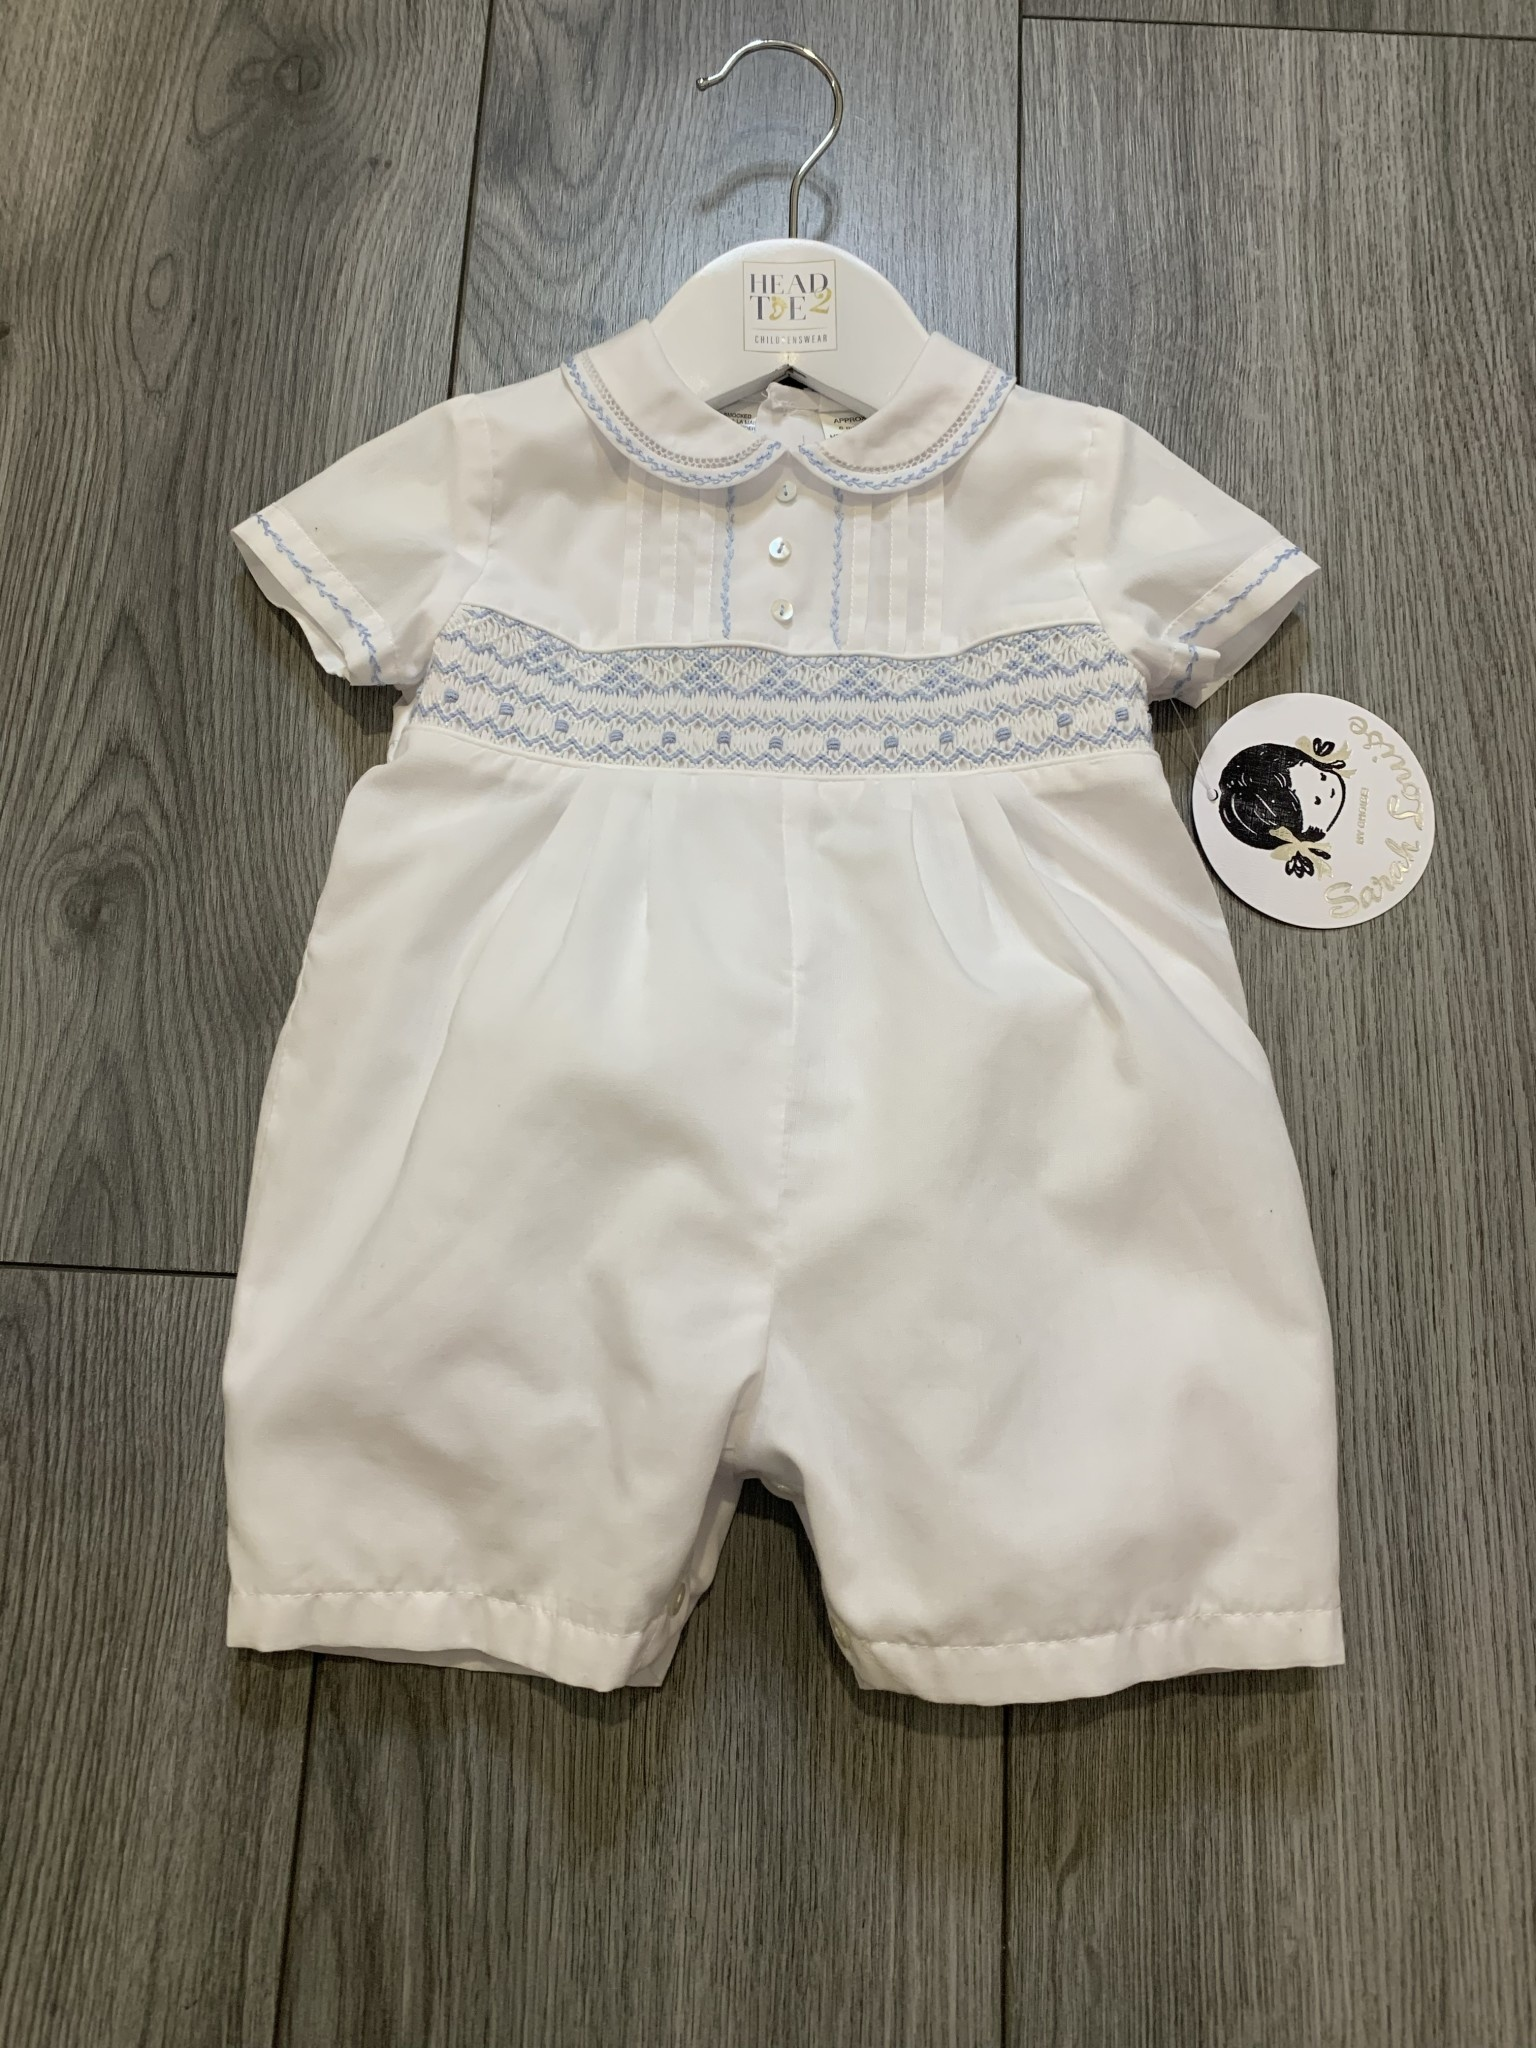 Sarah Louise Sarah Louise SS20 Boys All In One Smocked Romper White/Blue 011855